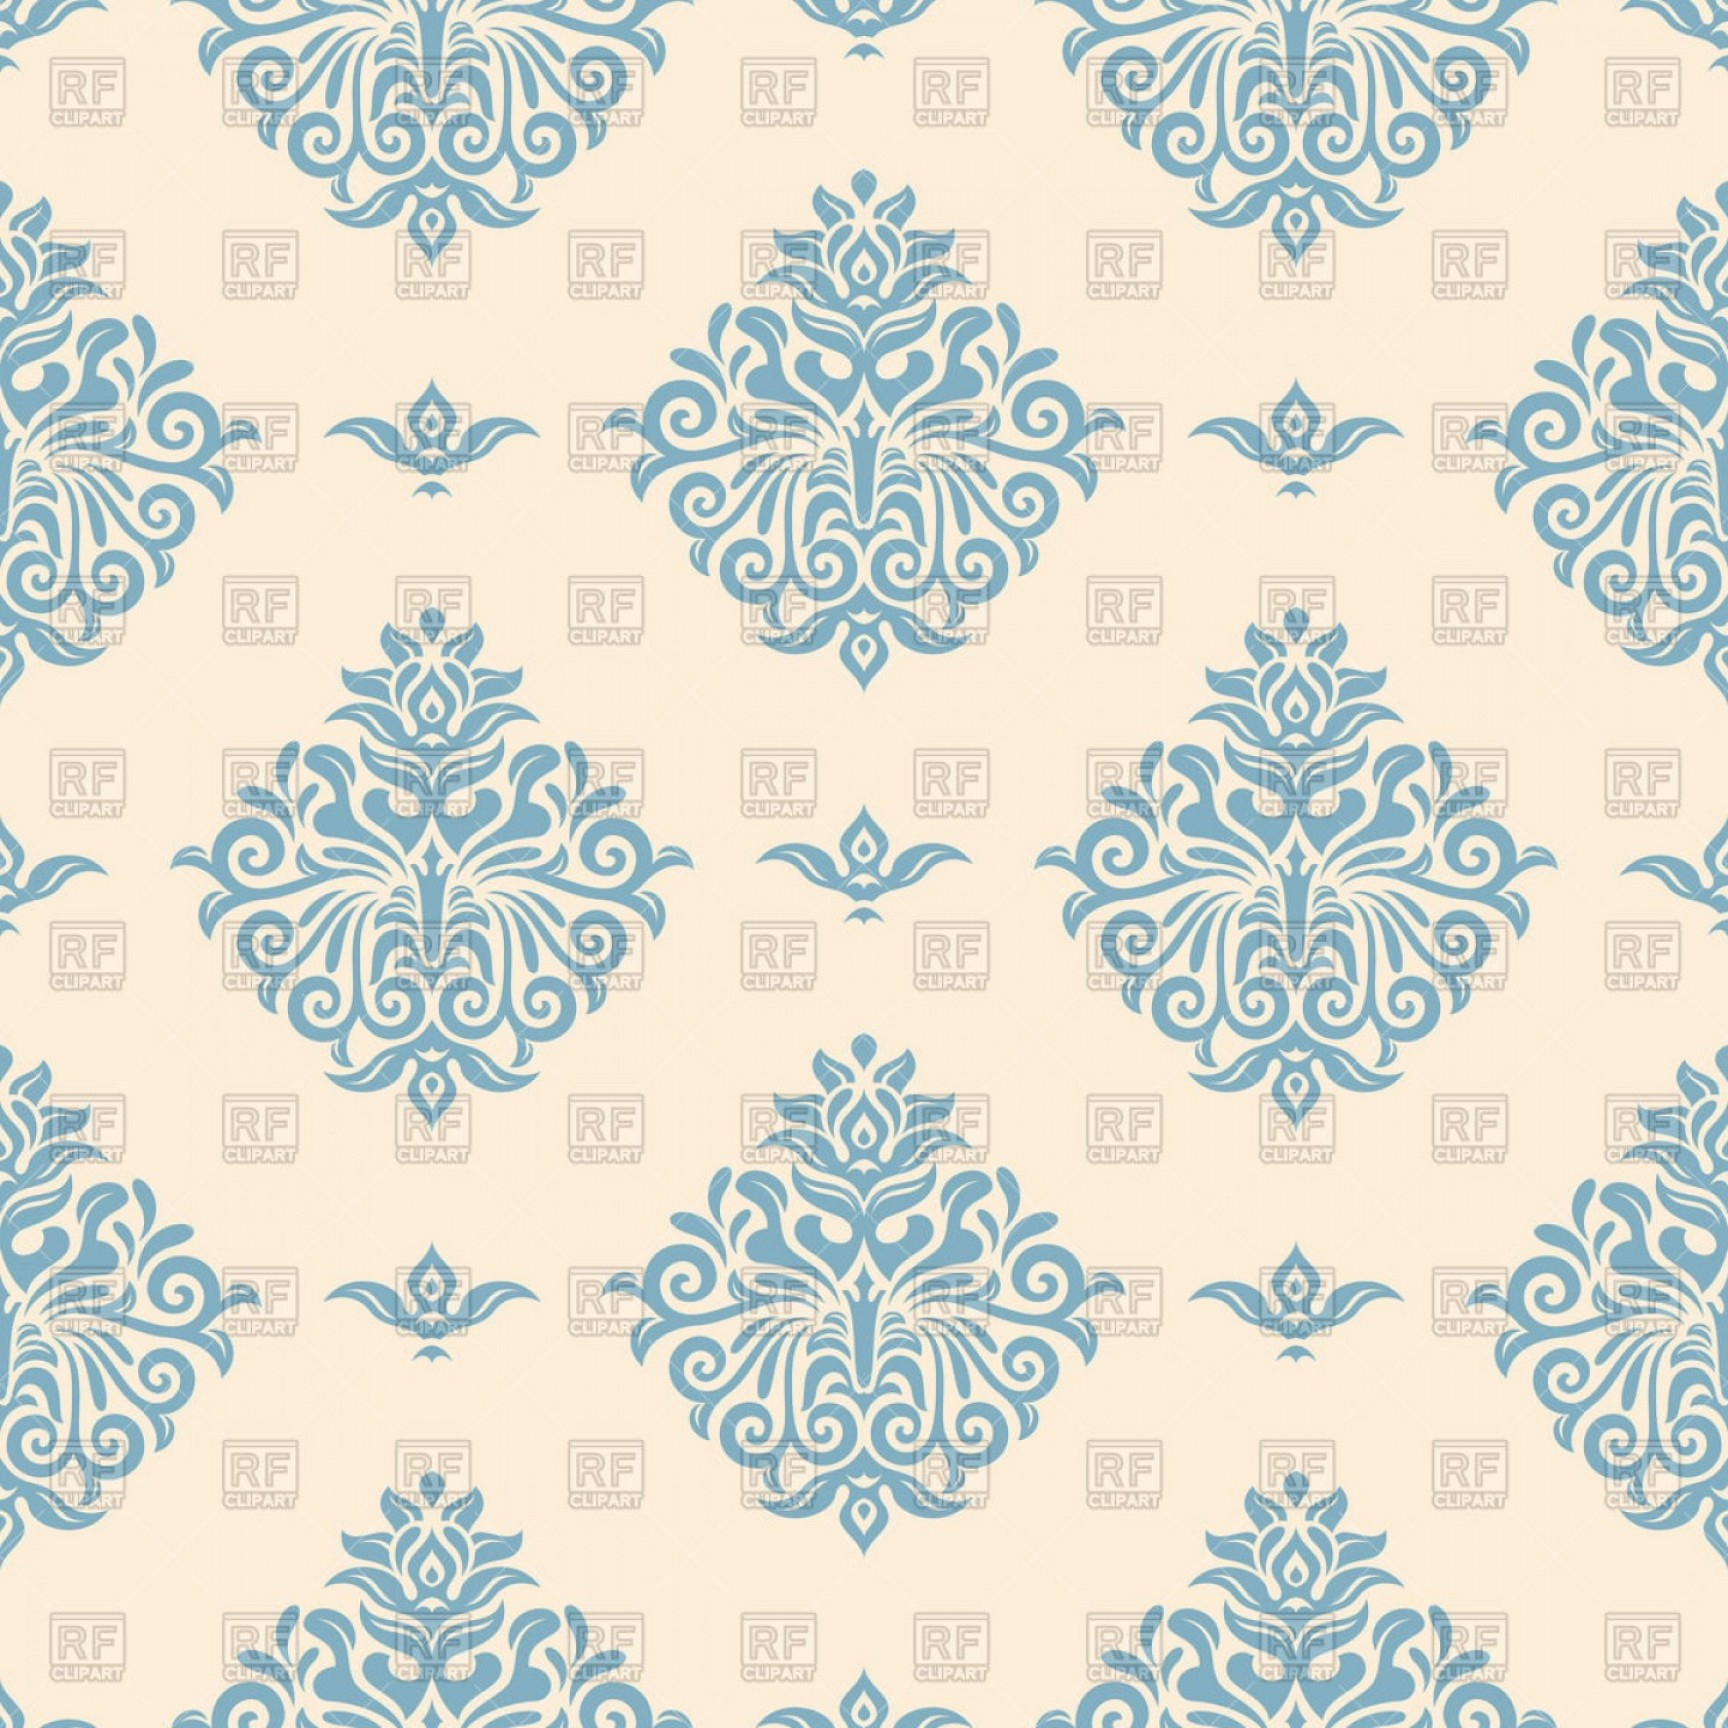 Blue Vintage Wallpaper With Victorian Ornament Vector.